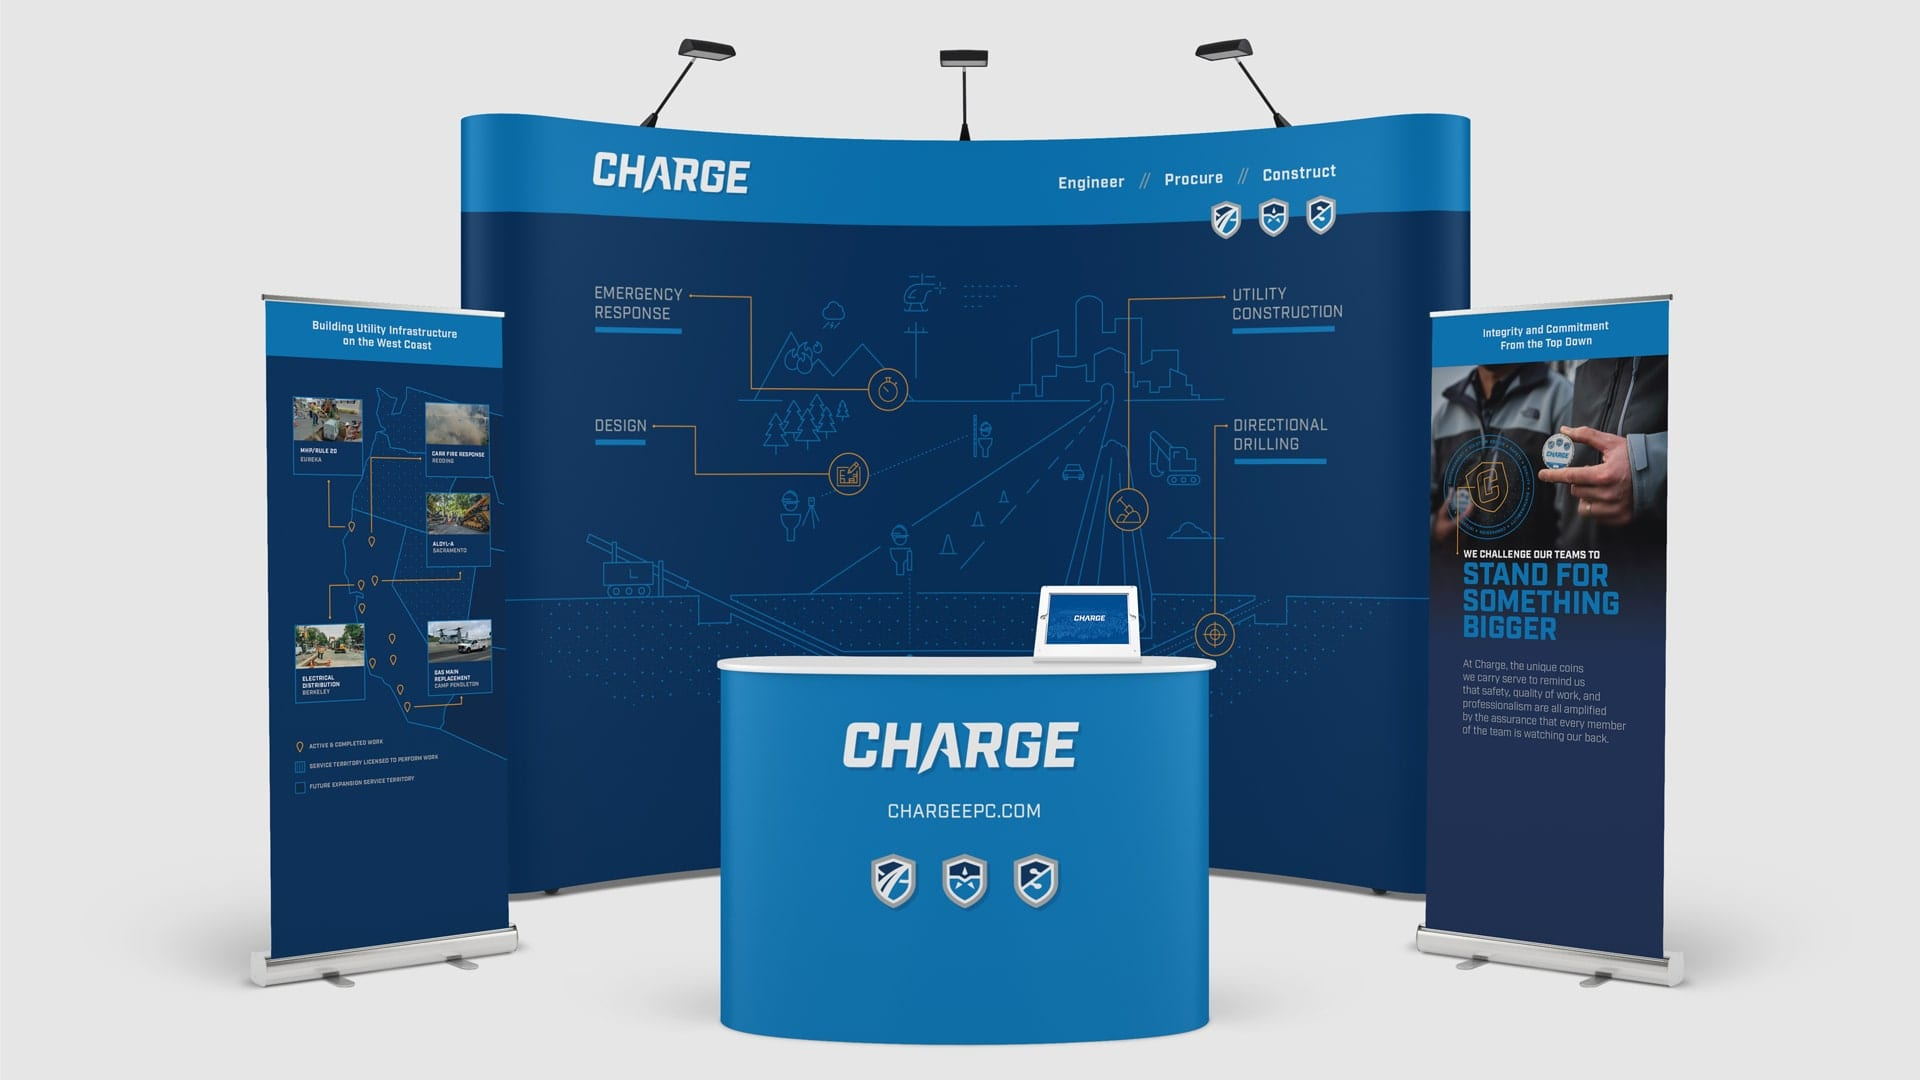 Charge event booth design